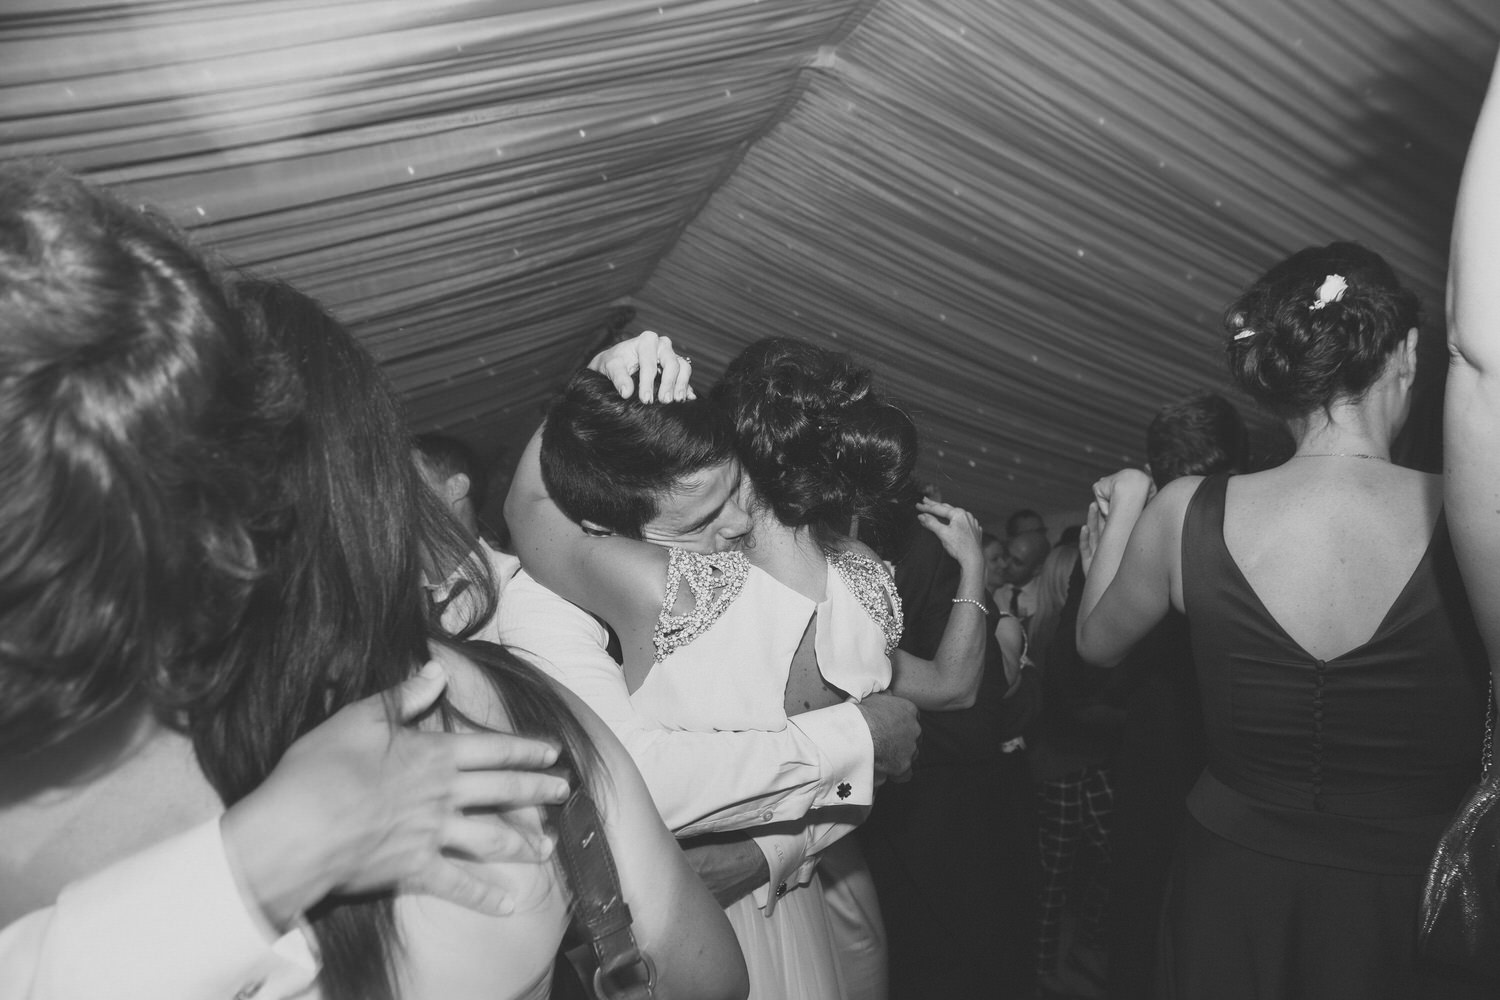 alternative_photographer_wedding_uk_mirrorbox_088.jpg